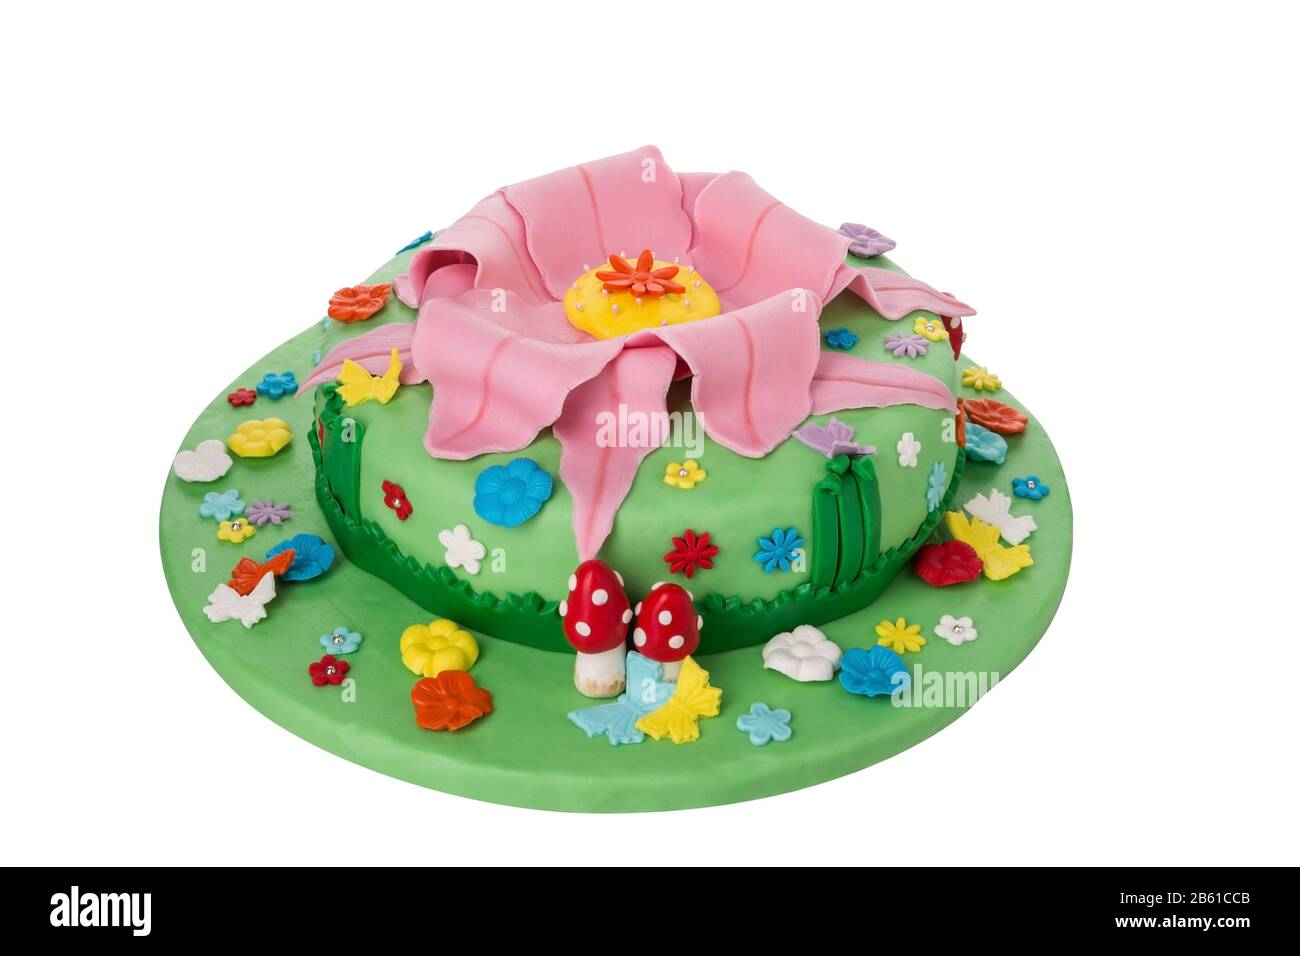 Fantastic Delicious And Creative Birthday Cake For Children Theme Nature Personalised Birthday Cards Bromeletsinfo